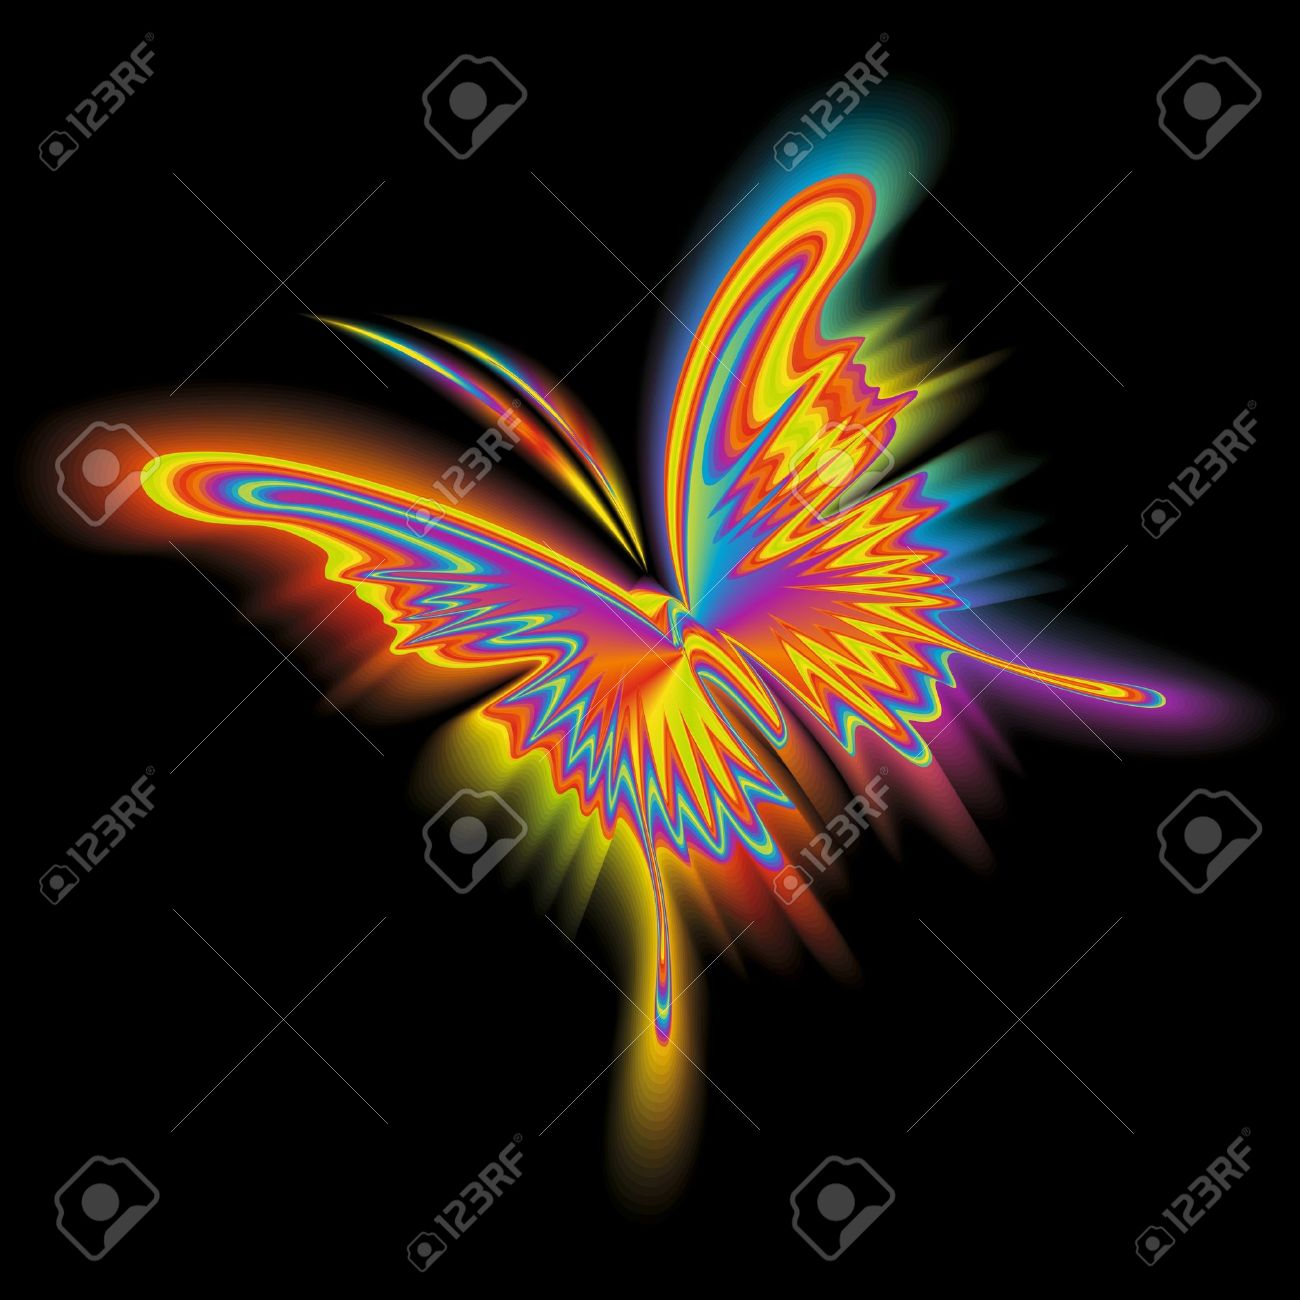 Abstract rainbow butterfly in flight on a black background. Vector illustration. Stock Vector - 10708228